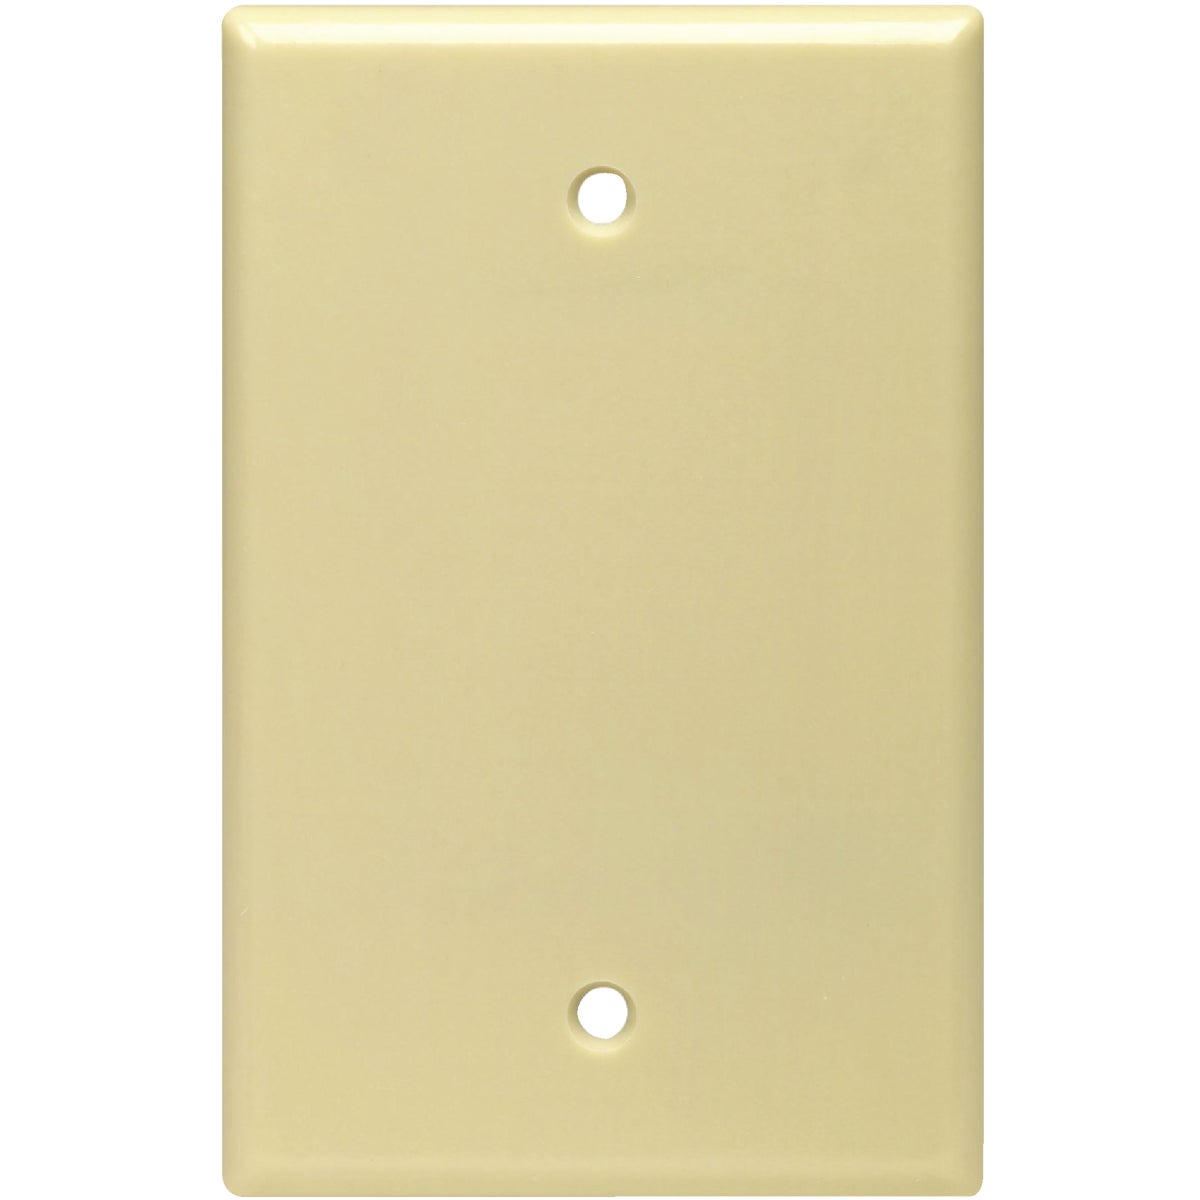 IV BLANK WALL PLATE - 80514I by Leviton Mfg Co